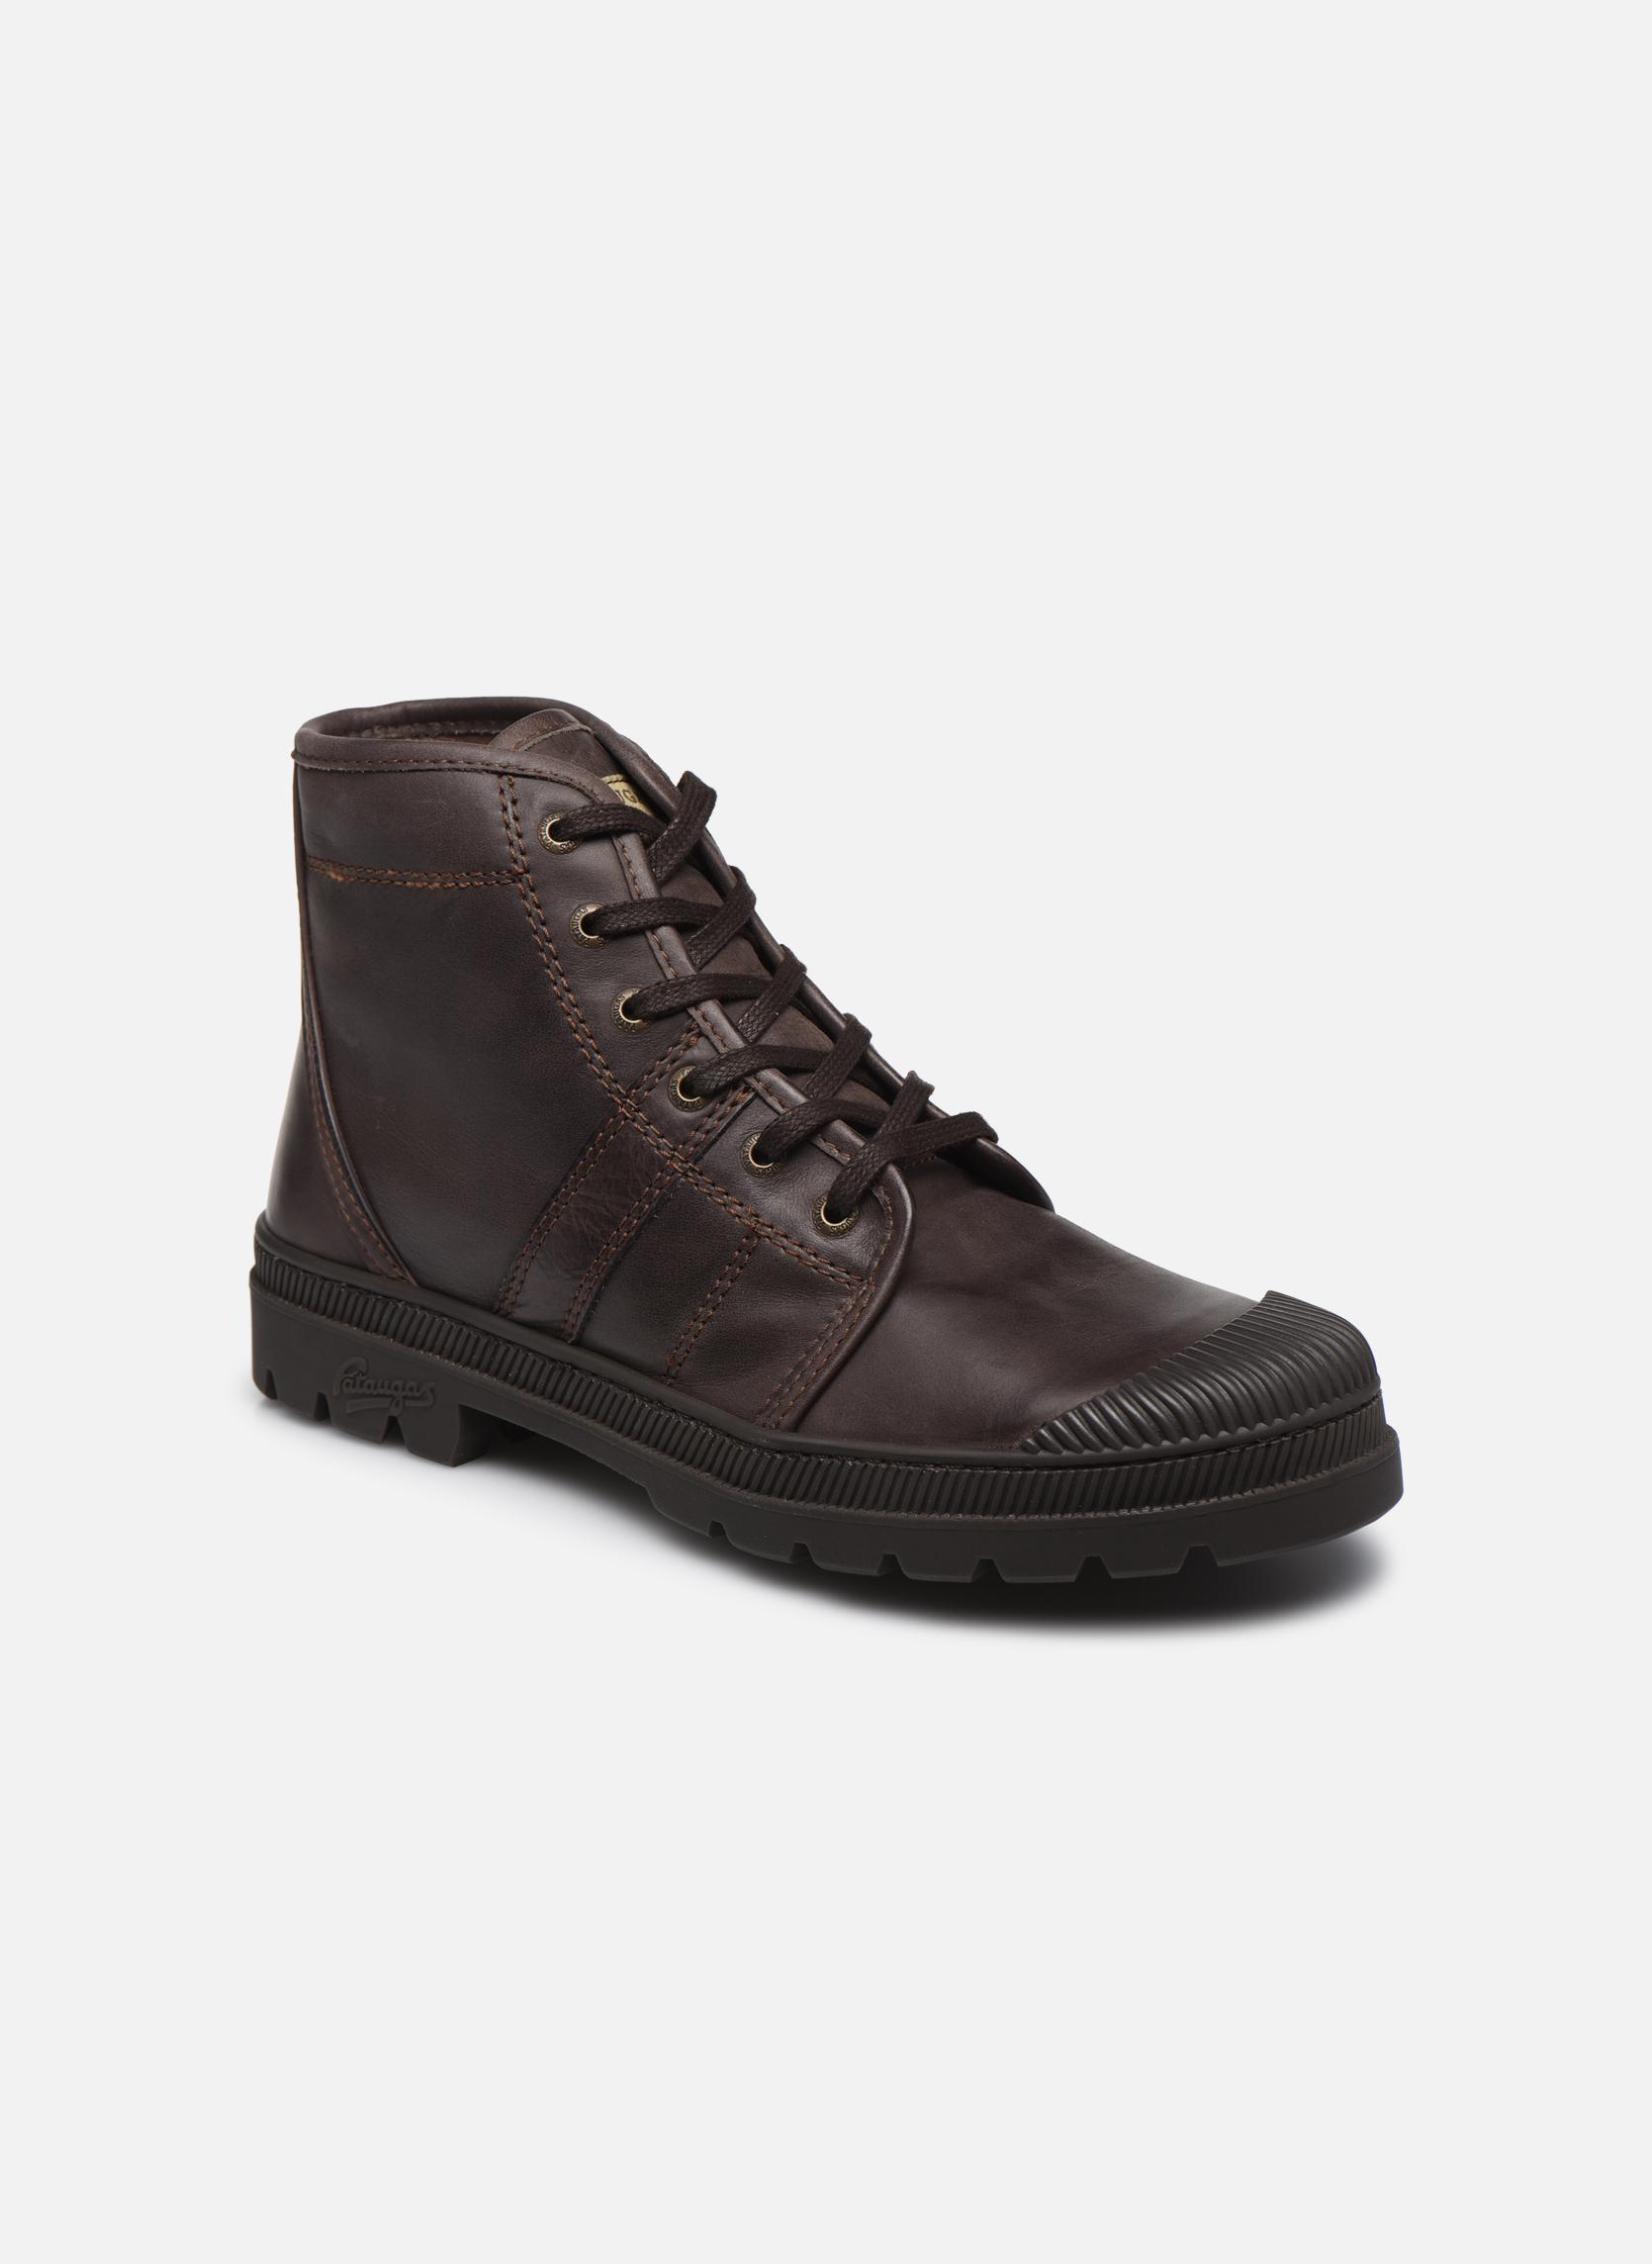 Stiefeletten & Boots Herren Authentique M